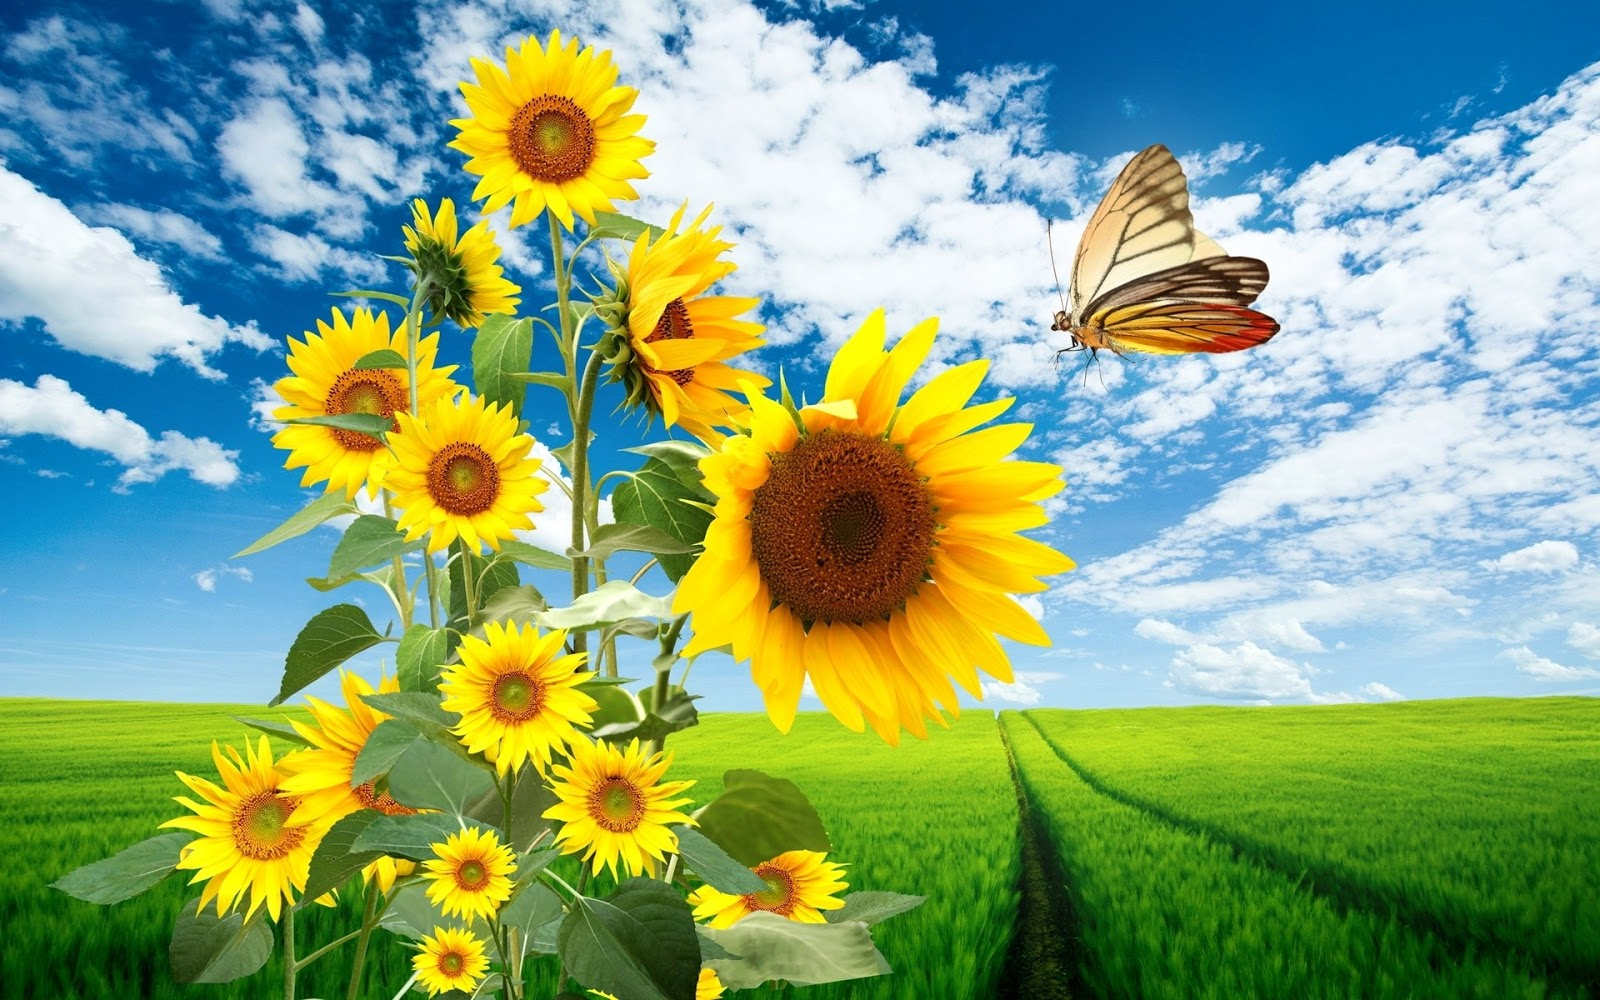 Fall Sunflowers Wallpaper Wallpapers Sols Nature Sunflowers Hd Wallpapers